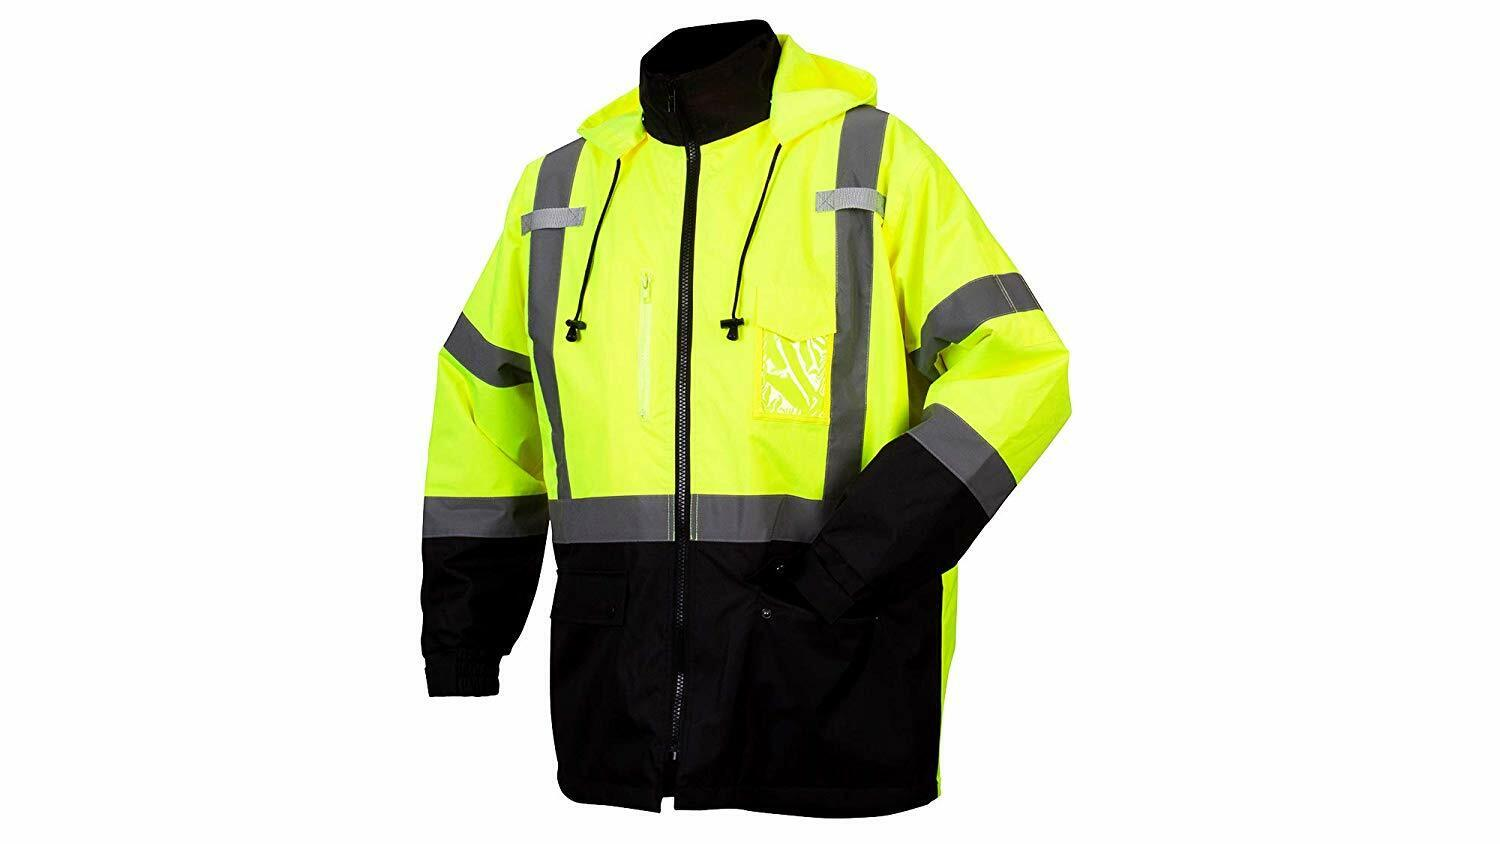 Pyramex RP3110 Hi-Vis Weatherproof Safety Parka, Hi-Vis Lime-Various Size M-4XL Business & Industrial